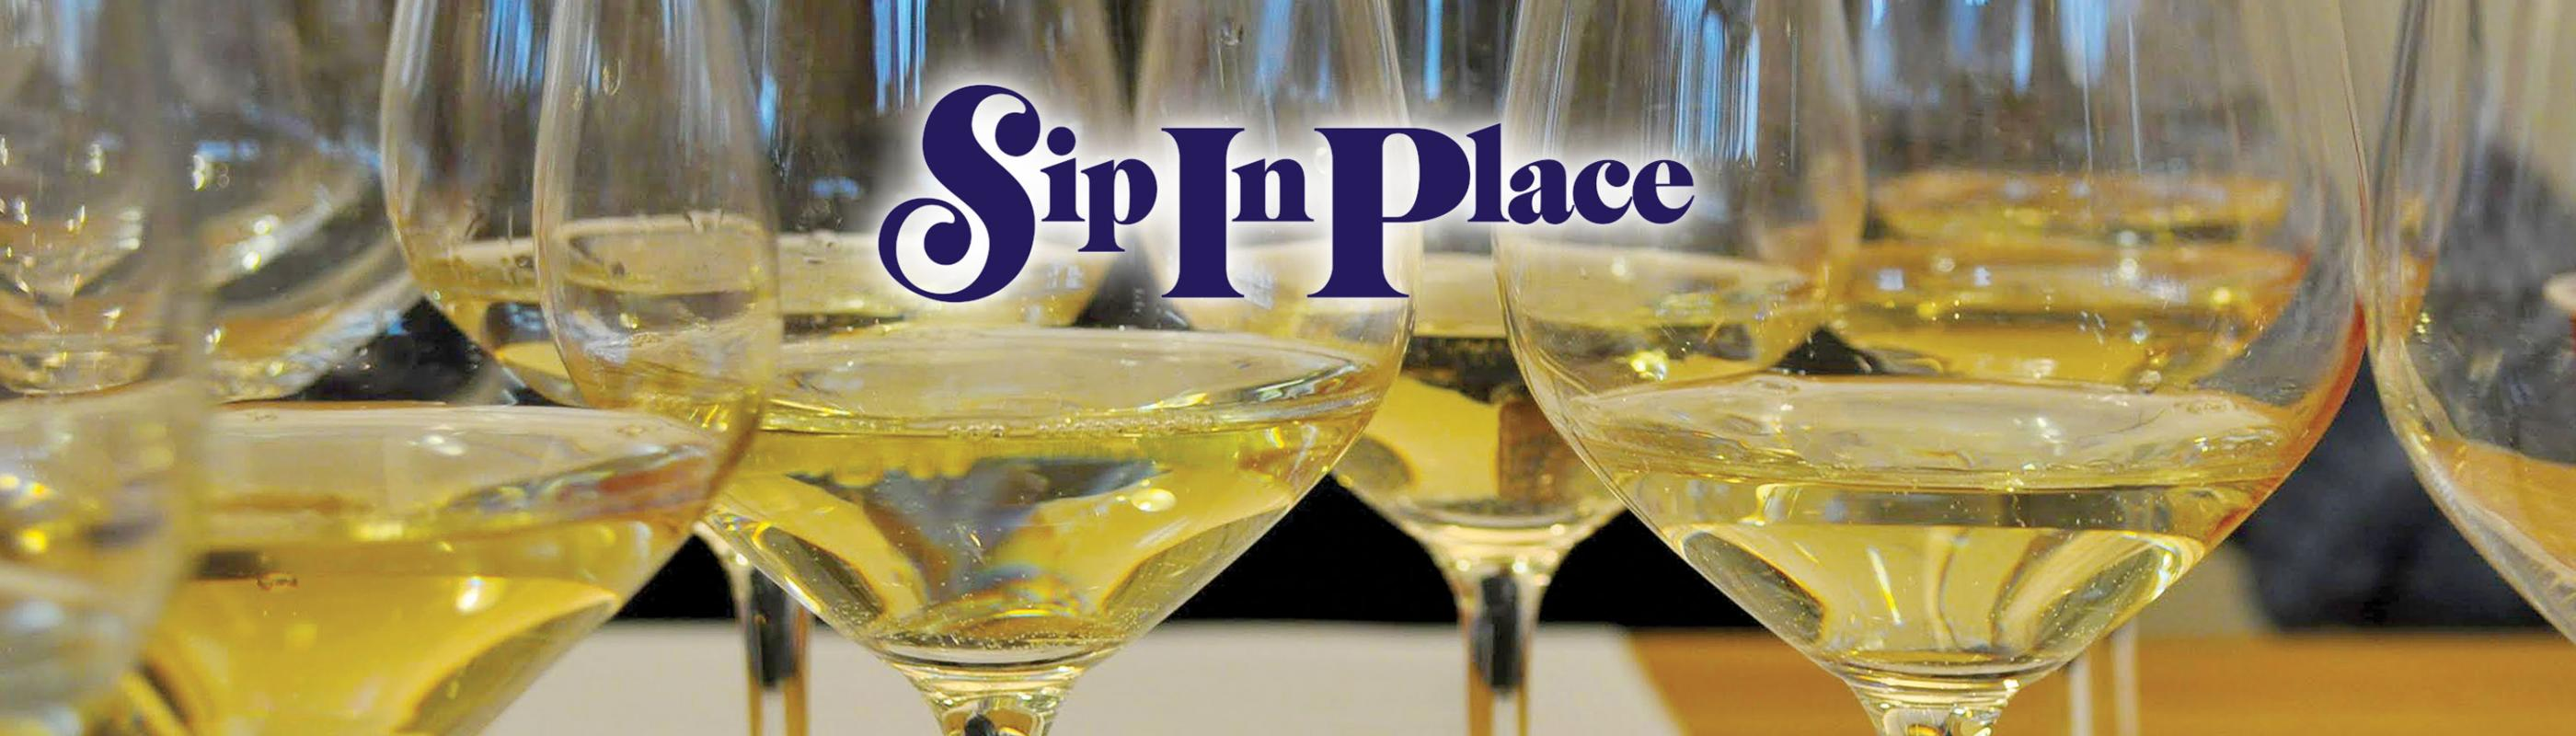 Sip in Place